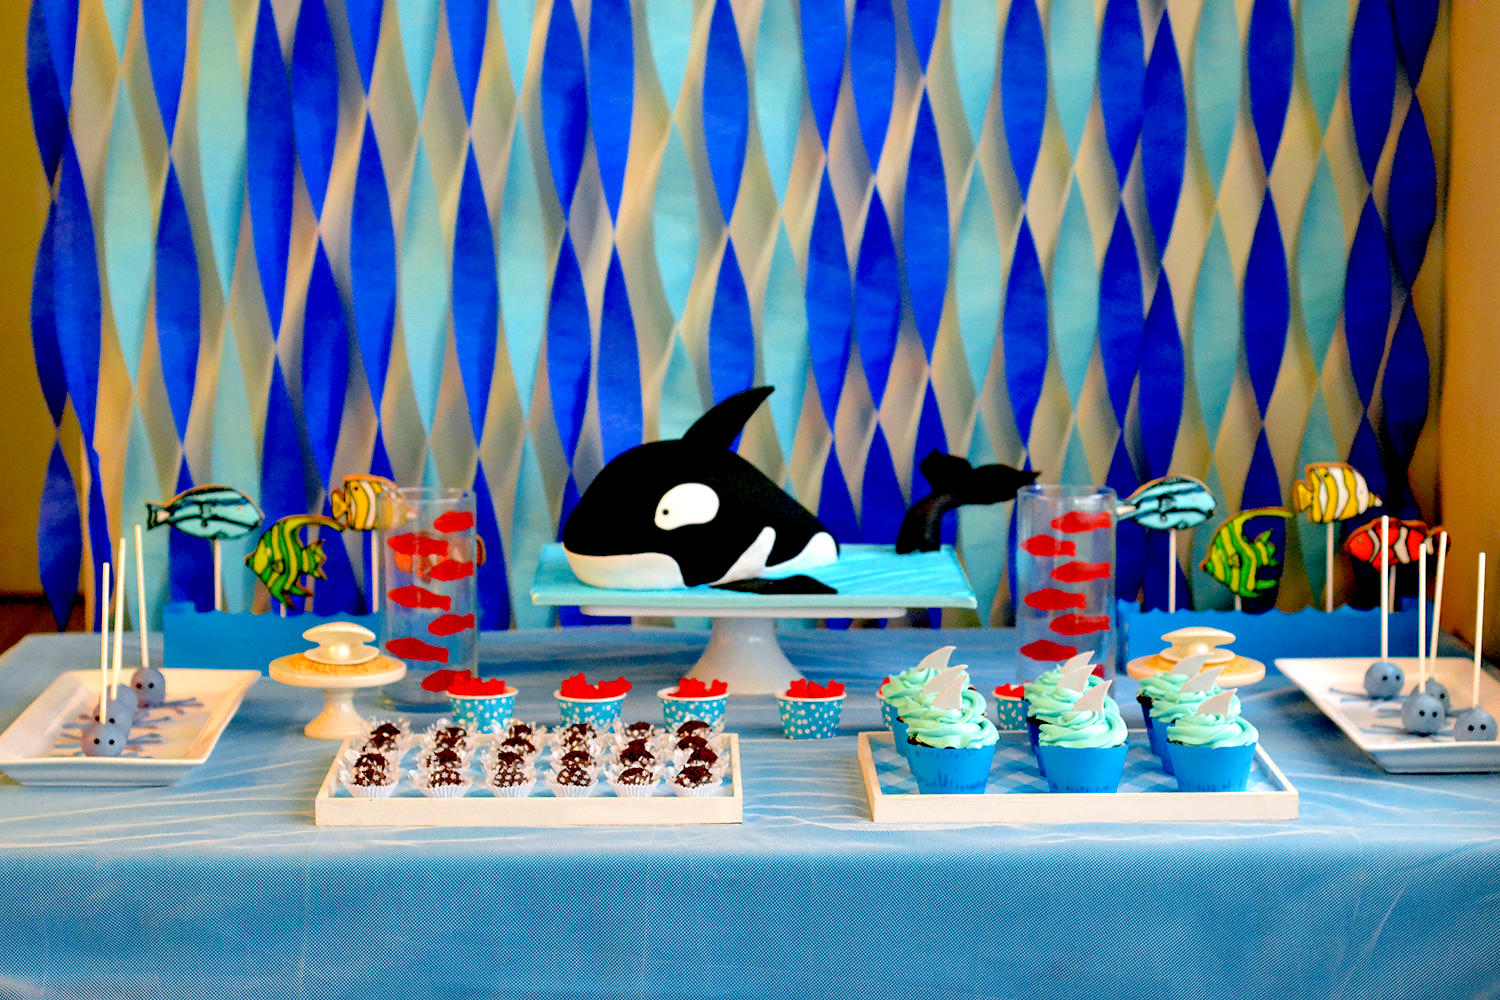 Ocean birthday dessert table